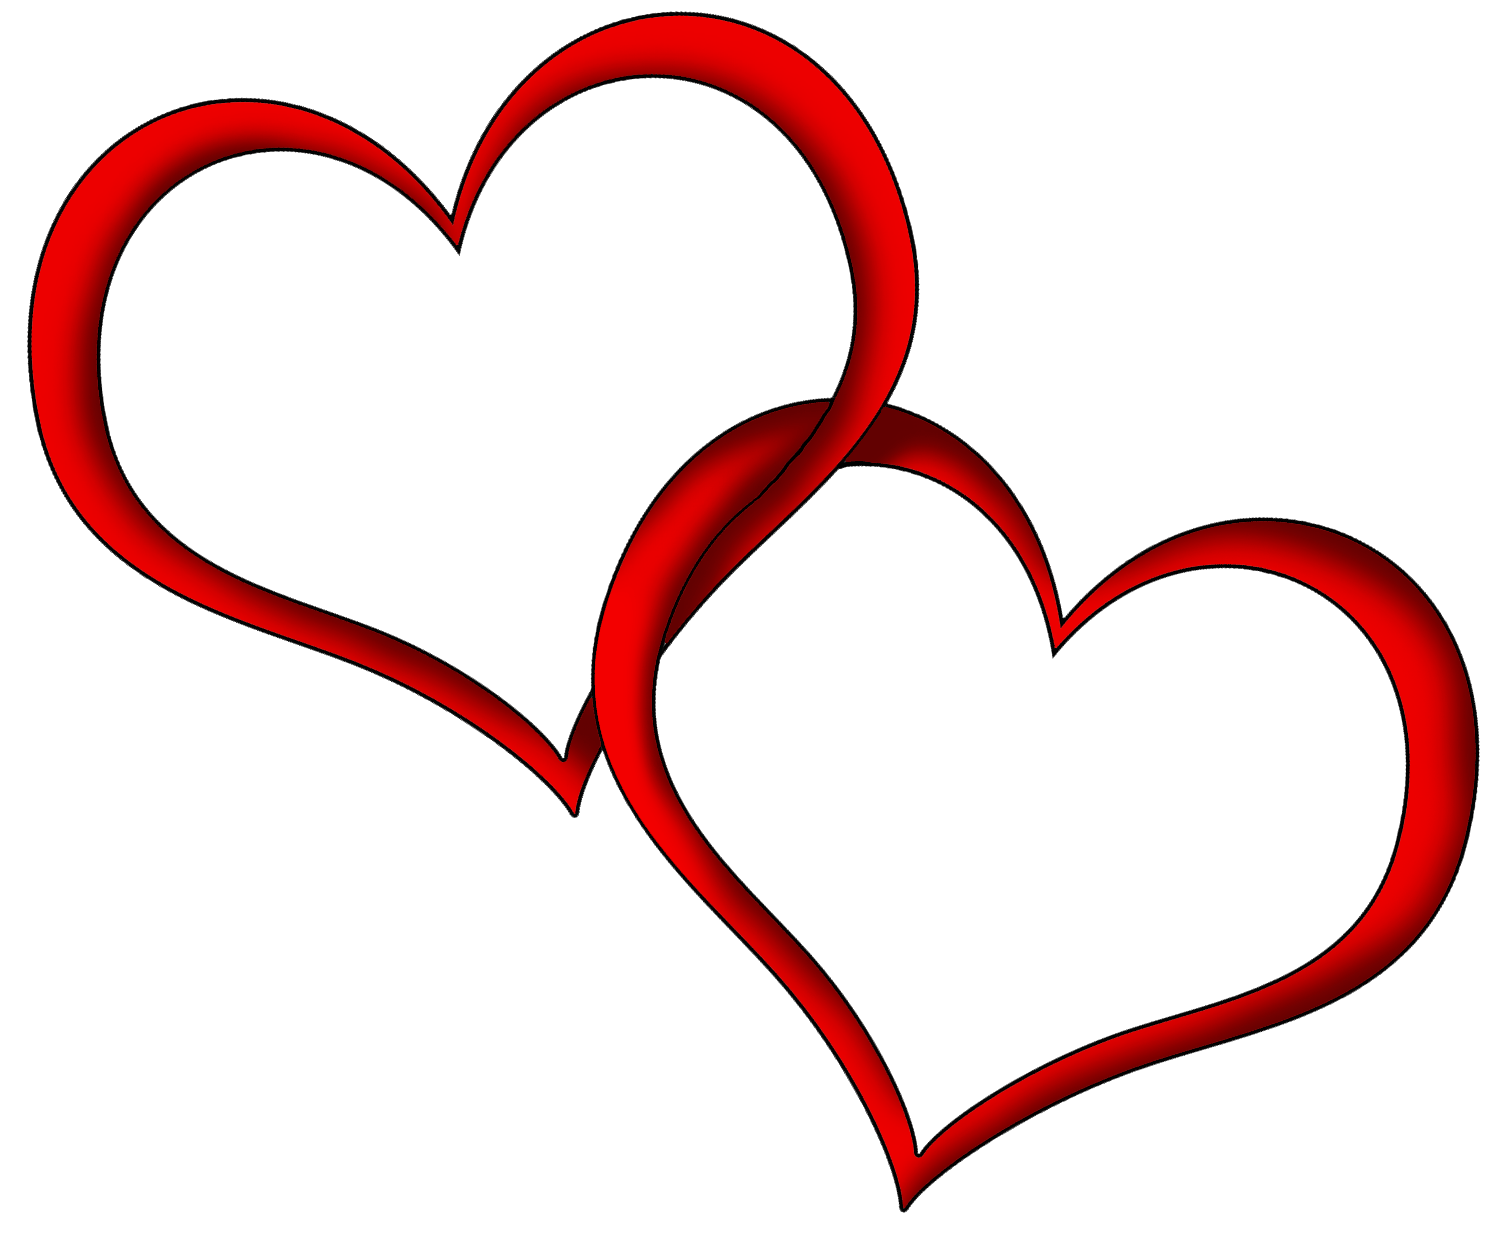 Heart images png. Outline couple red transparent